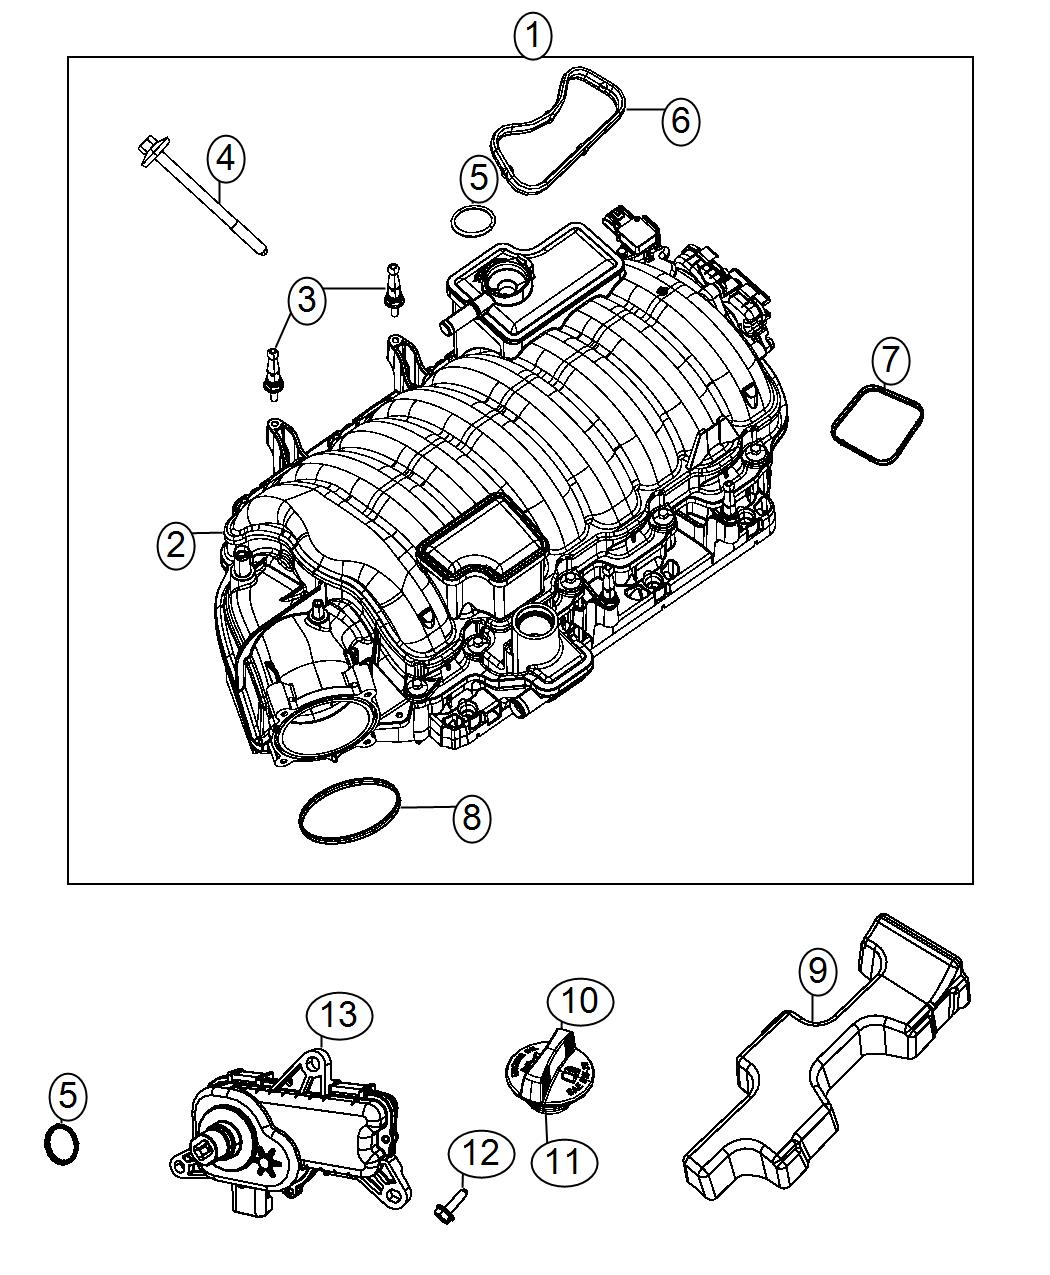 Actuator Intake Short Running Valve Engine